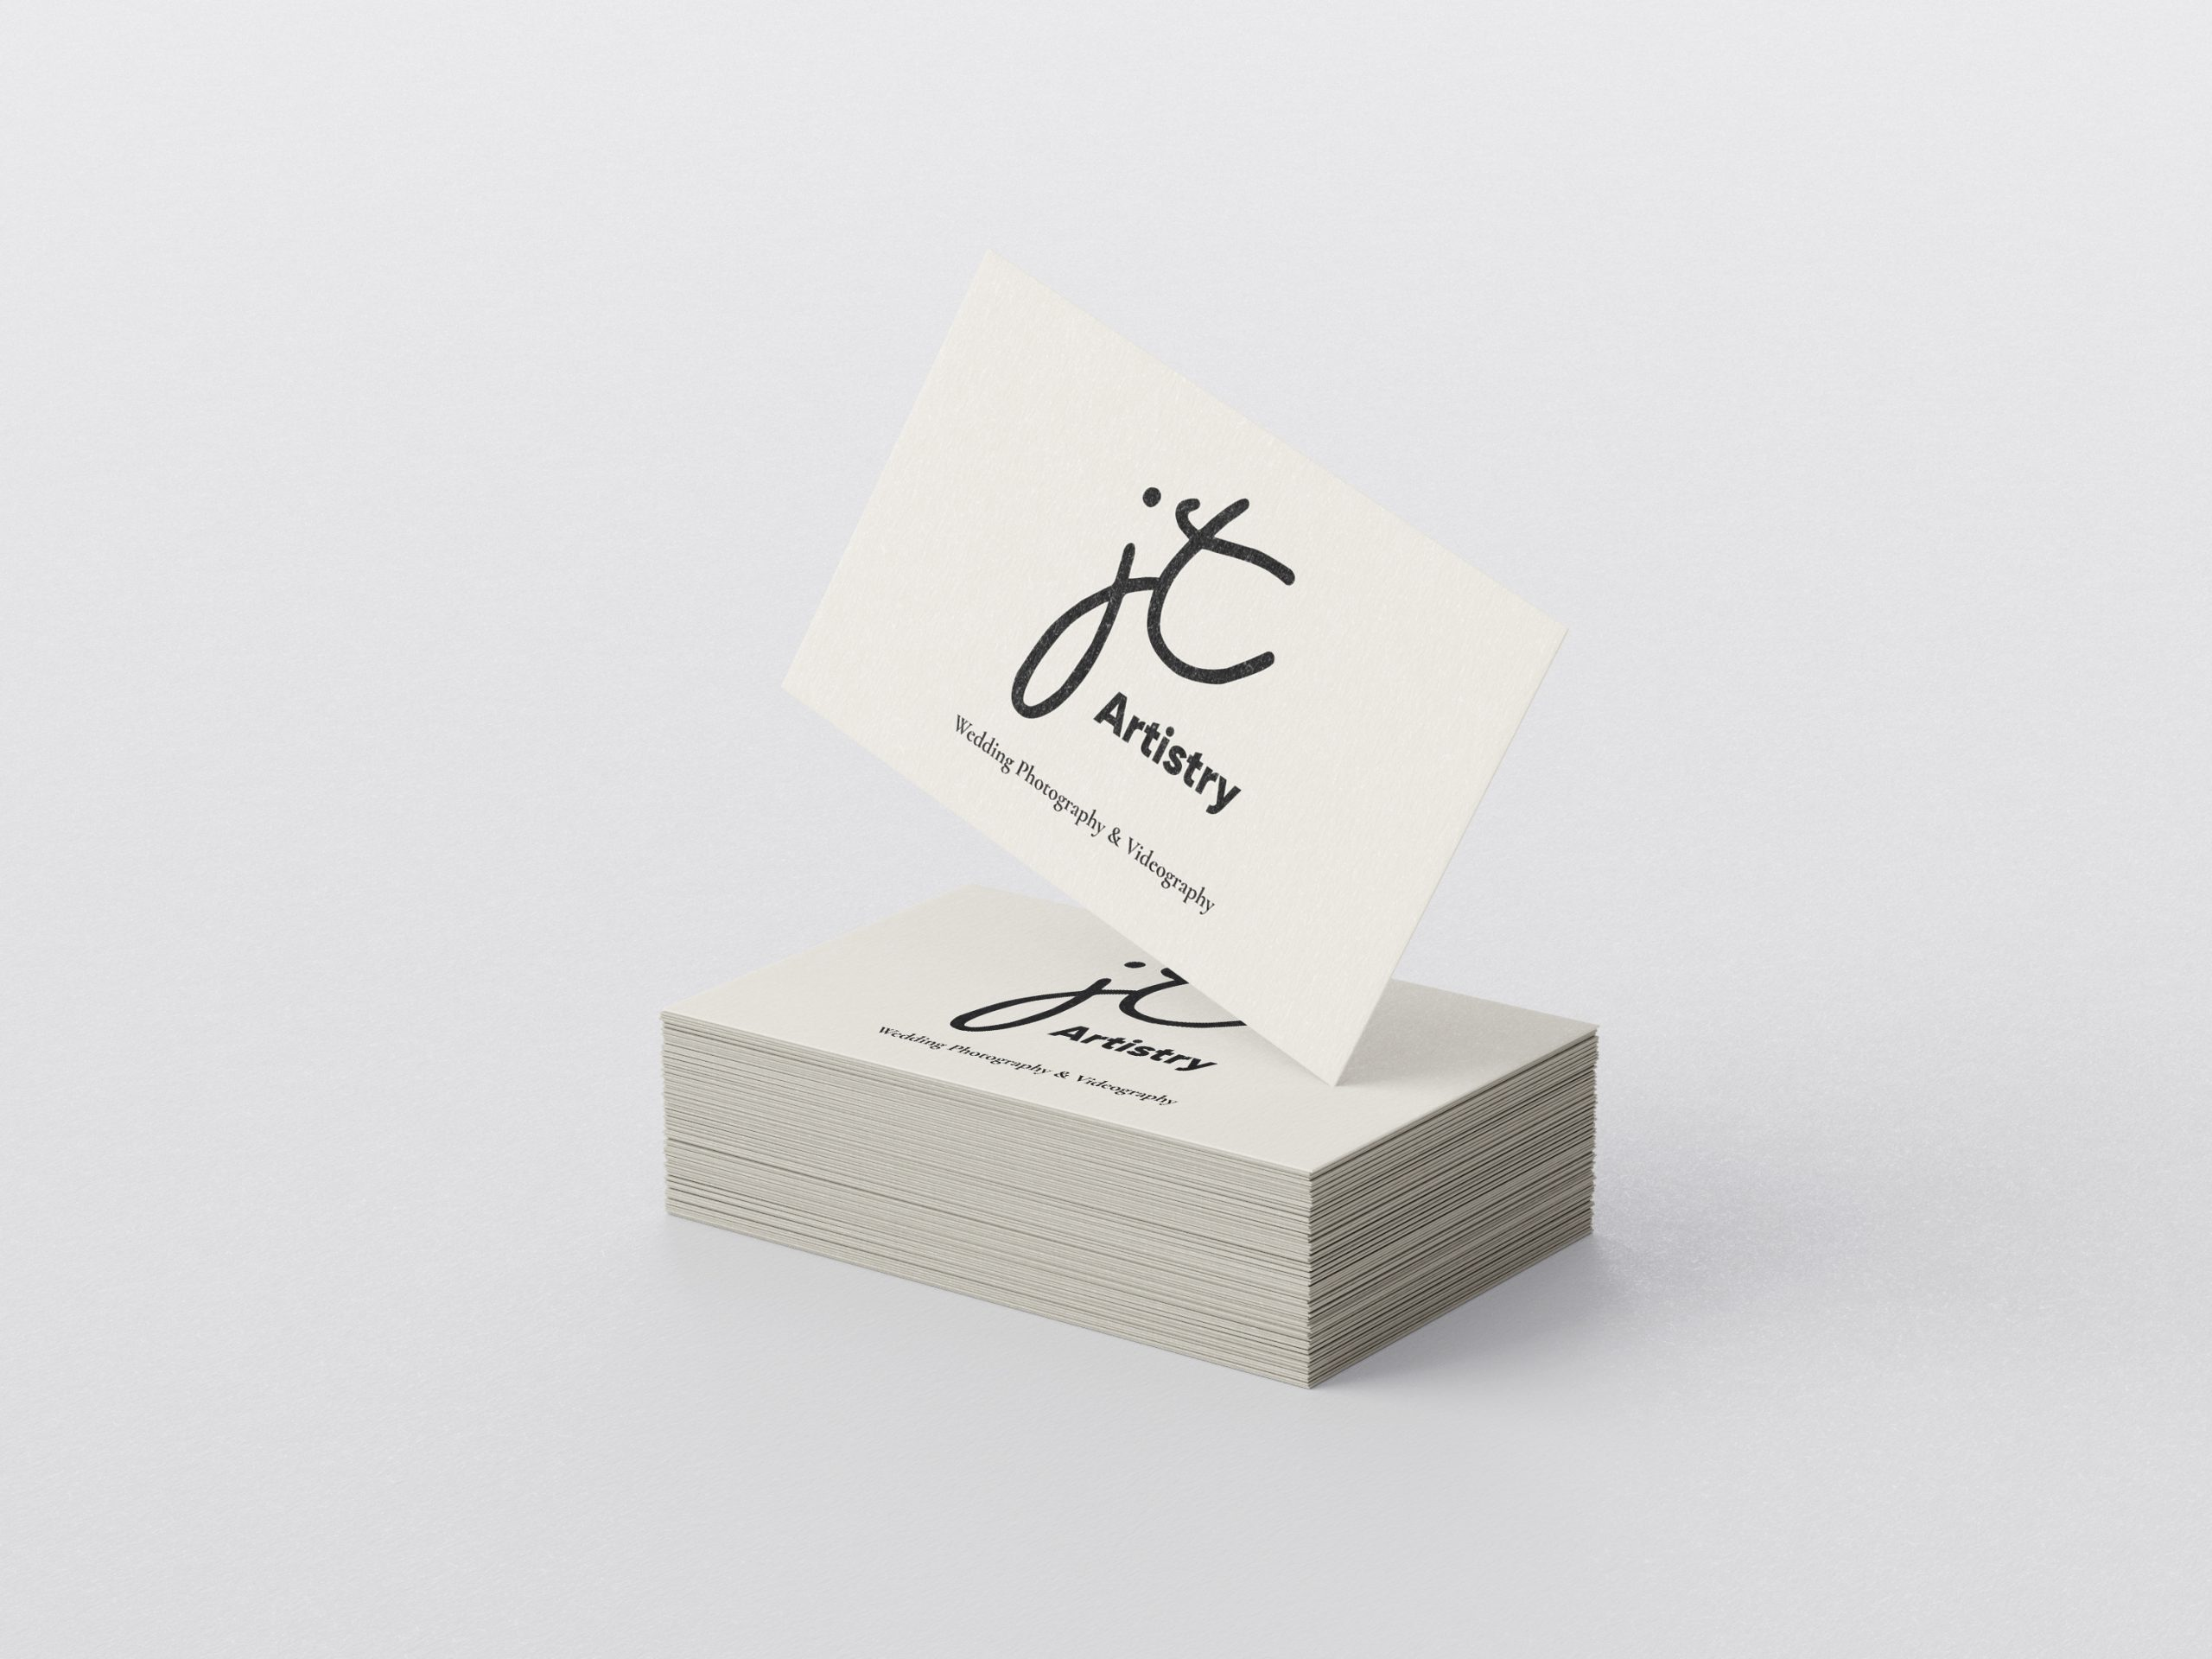 J and T Artistry business card_2